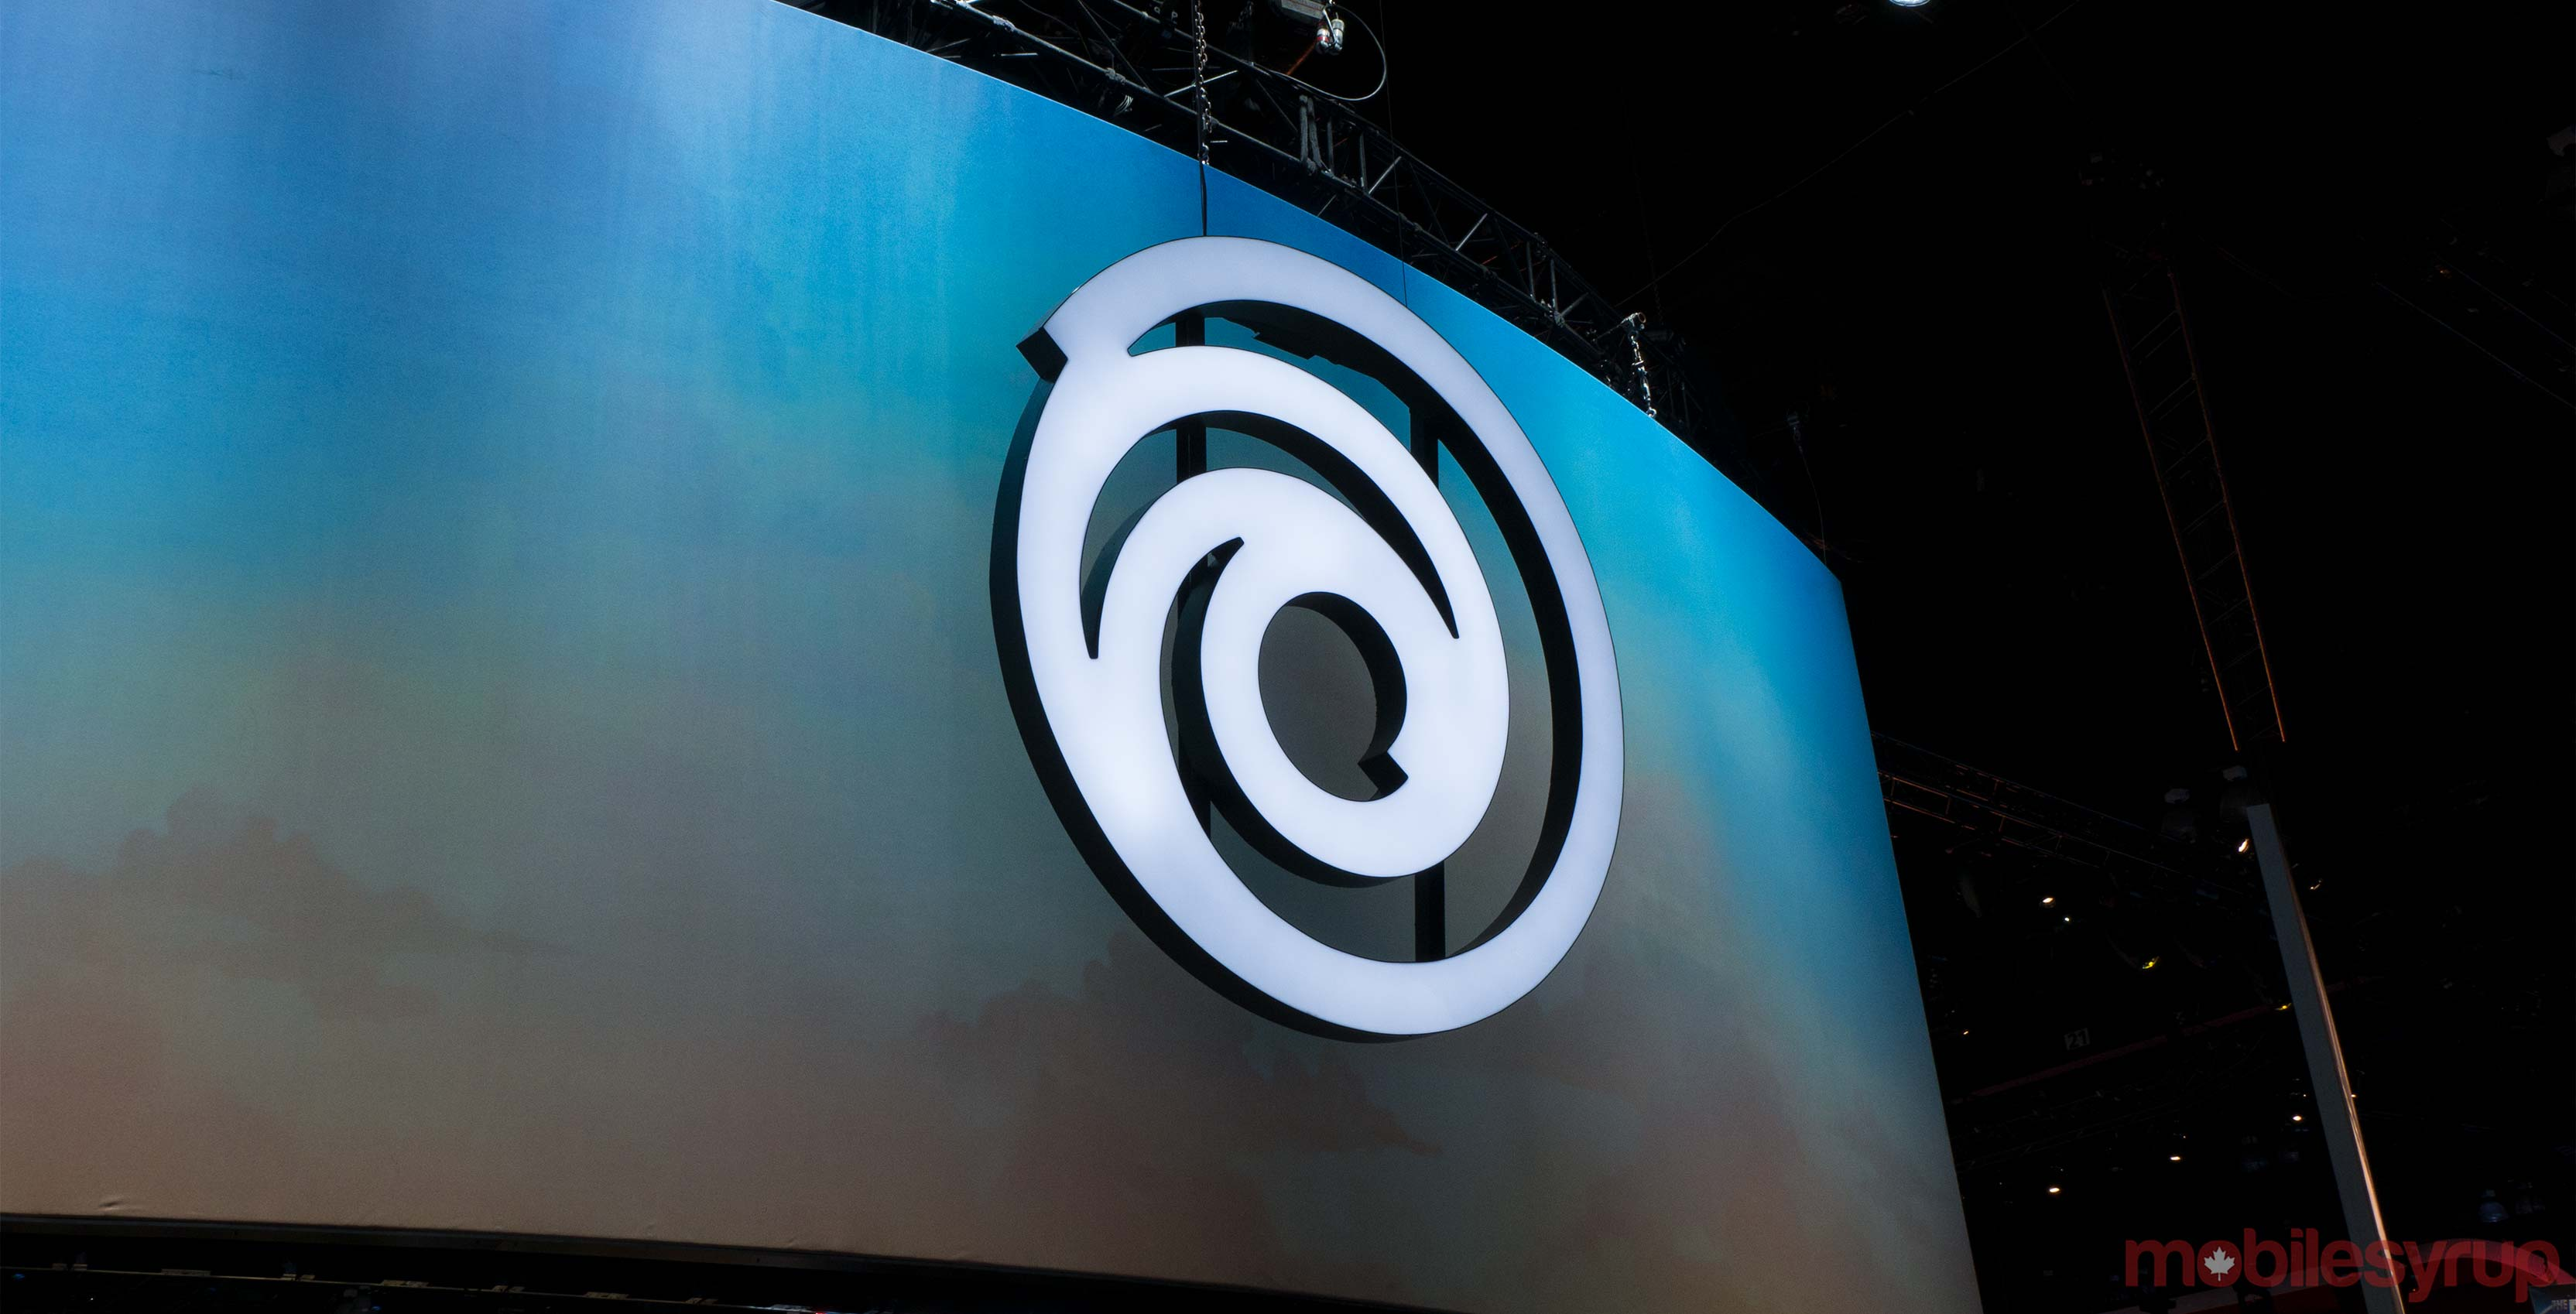 Ubisoft logo on wall